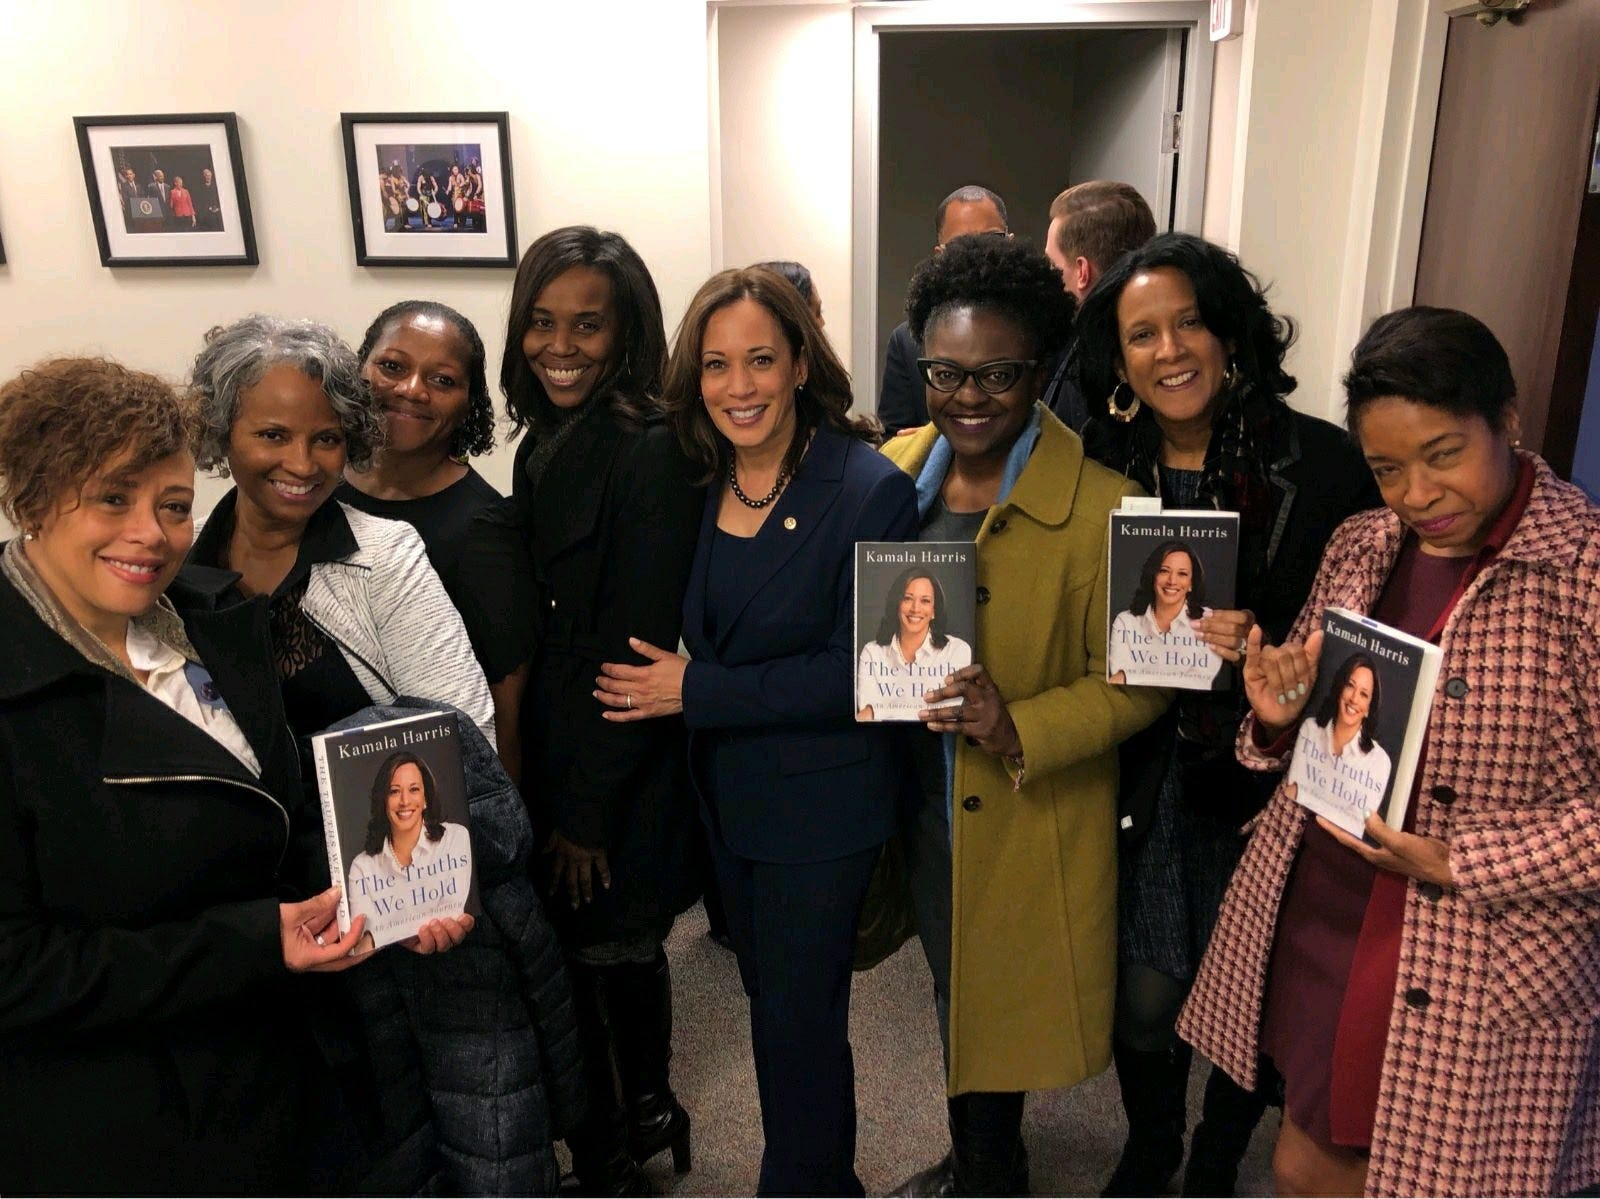 Can Kamala Harris Secure The Black Vote With Help From Her Sorority